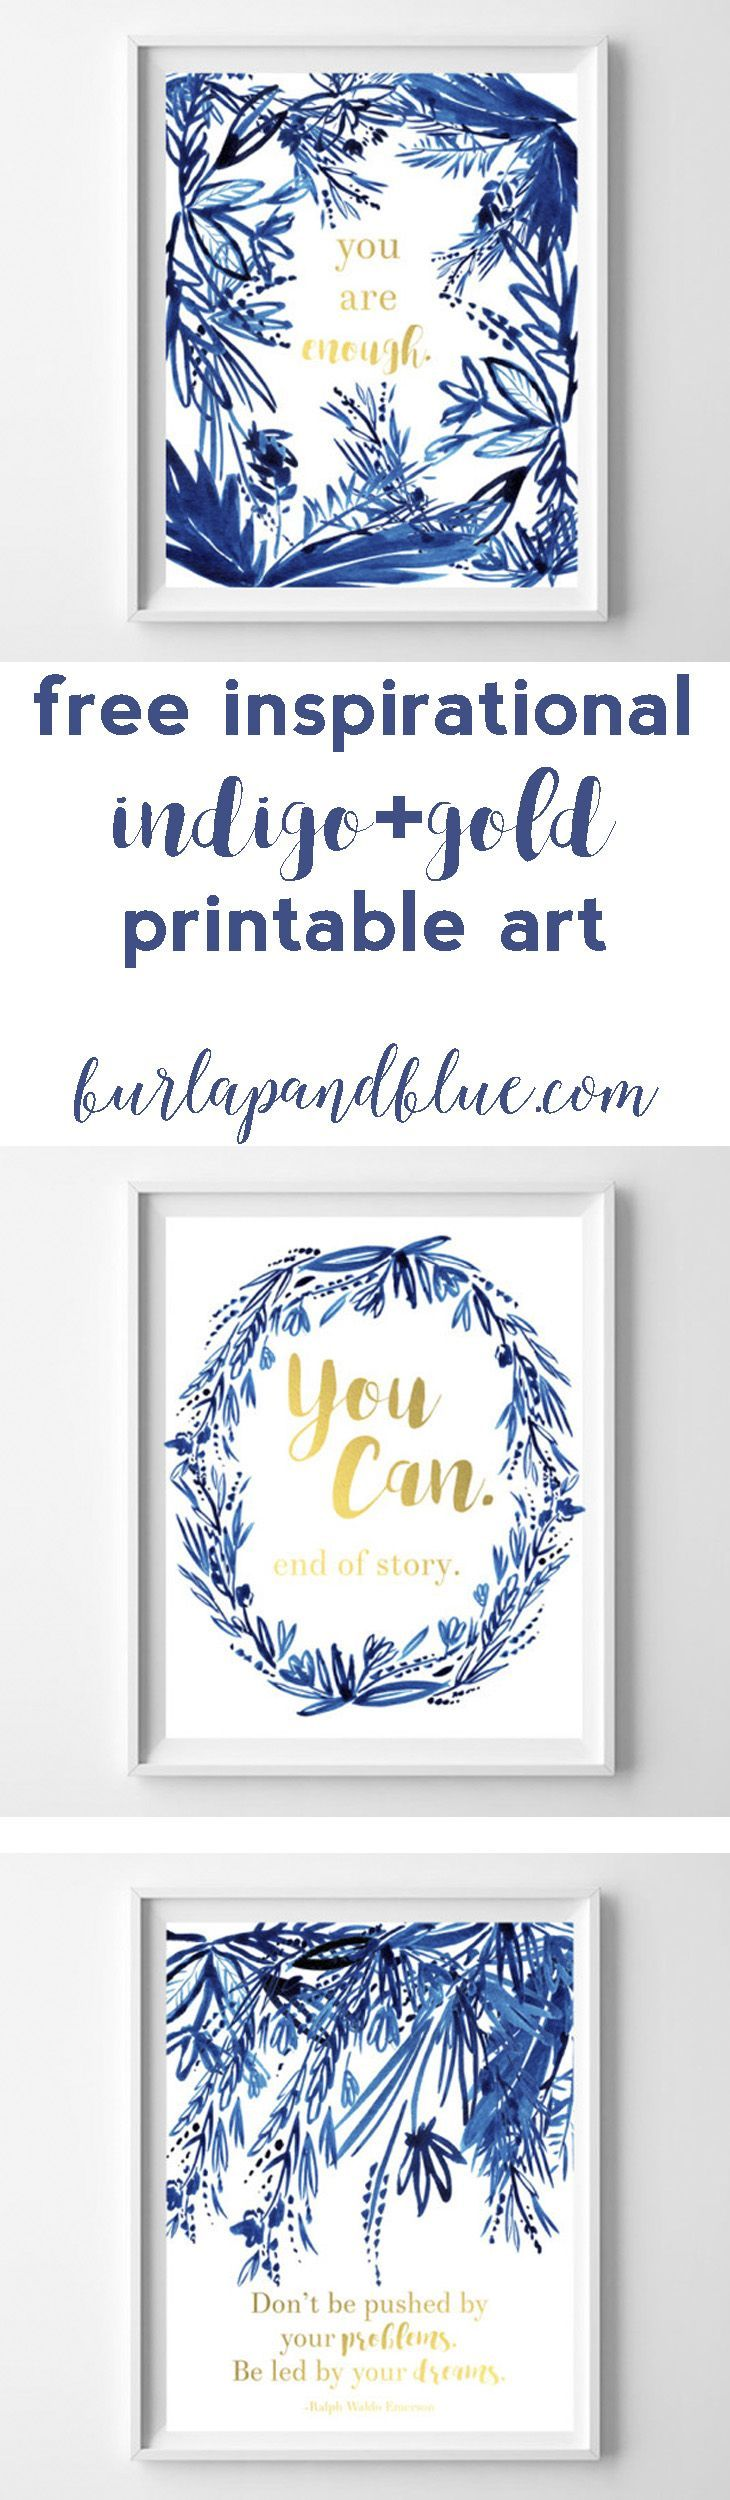 175 best Printable images on Pinterest | Posters, Free printables ...